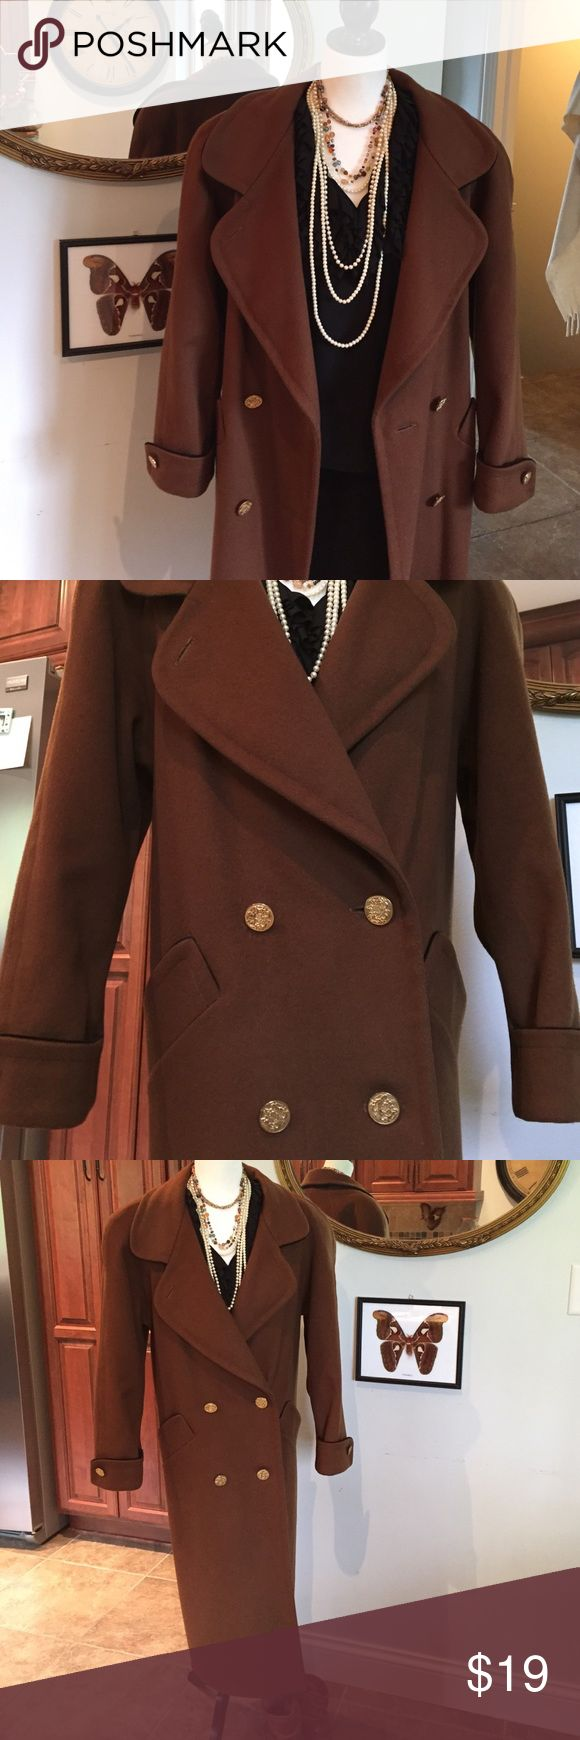 """LONG LINED BROWN DRESS COAT WITH BLACK PIPING Great condition! 100% wool & gold buttons. Measurements: 40"""" chest, 47"""" long, 24"""" sleeves. Black silky lining. Ashley Scott Jackets & Coats"""